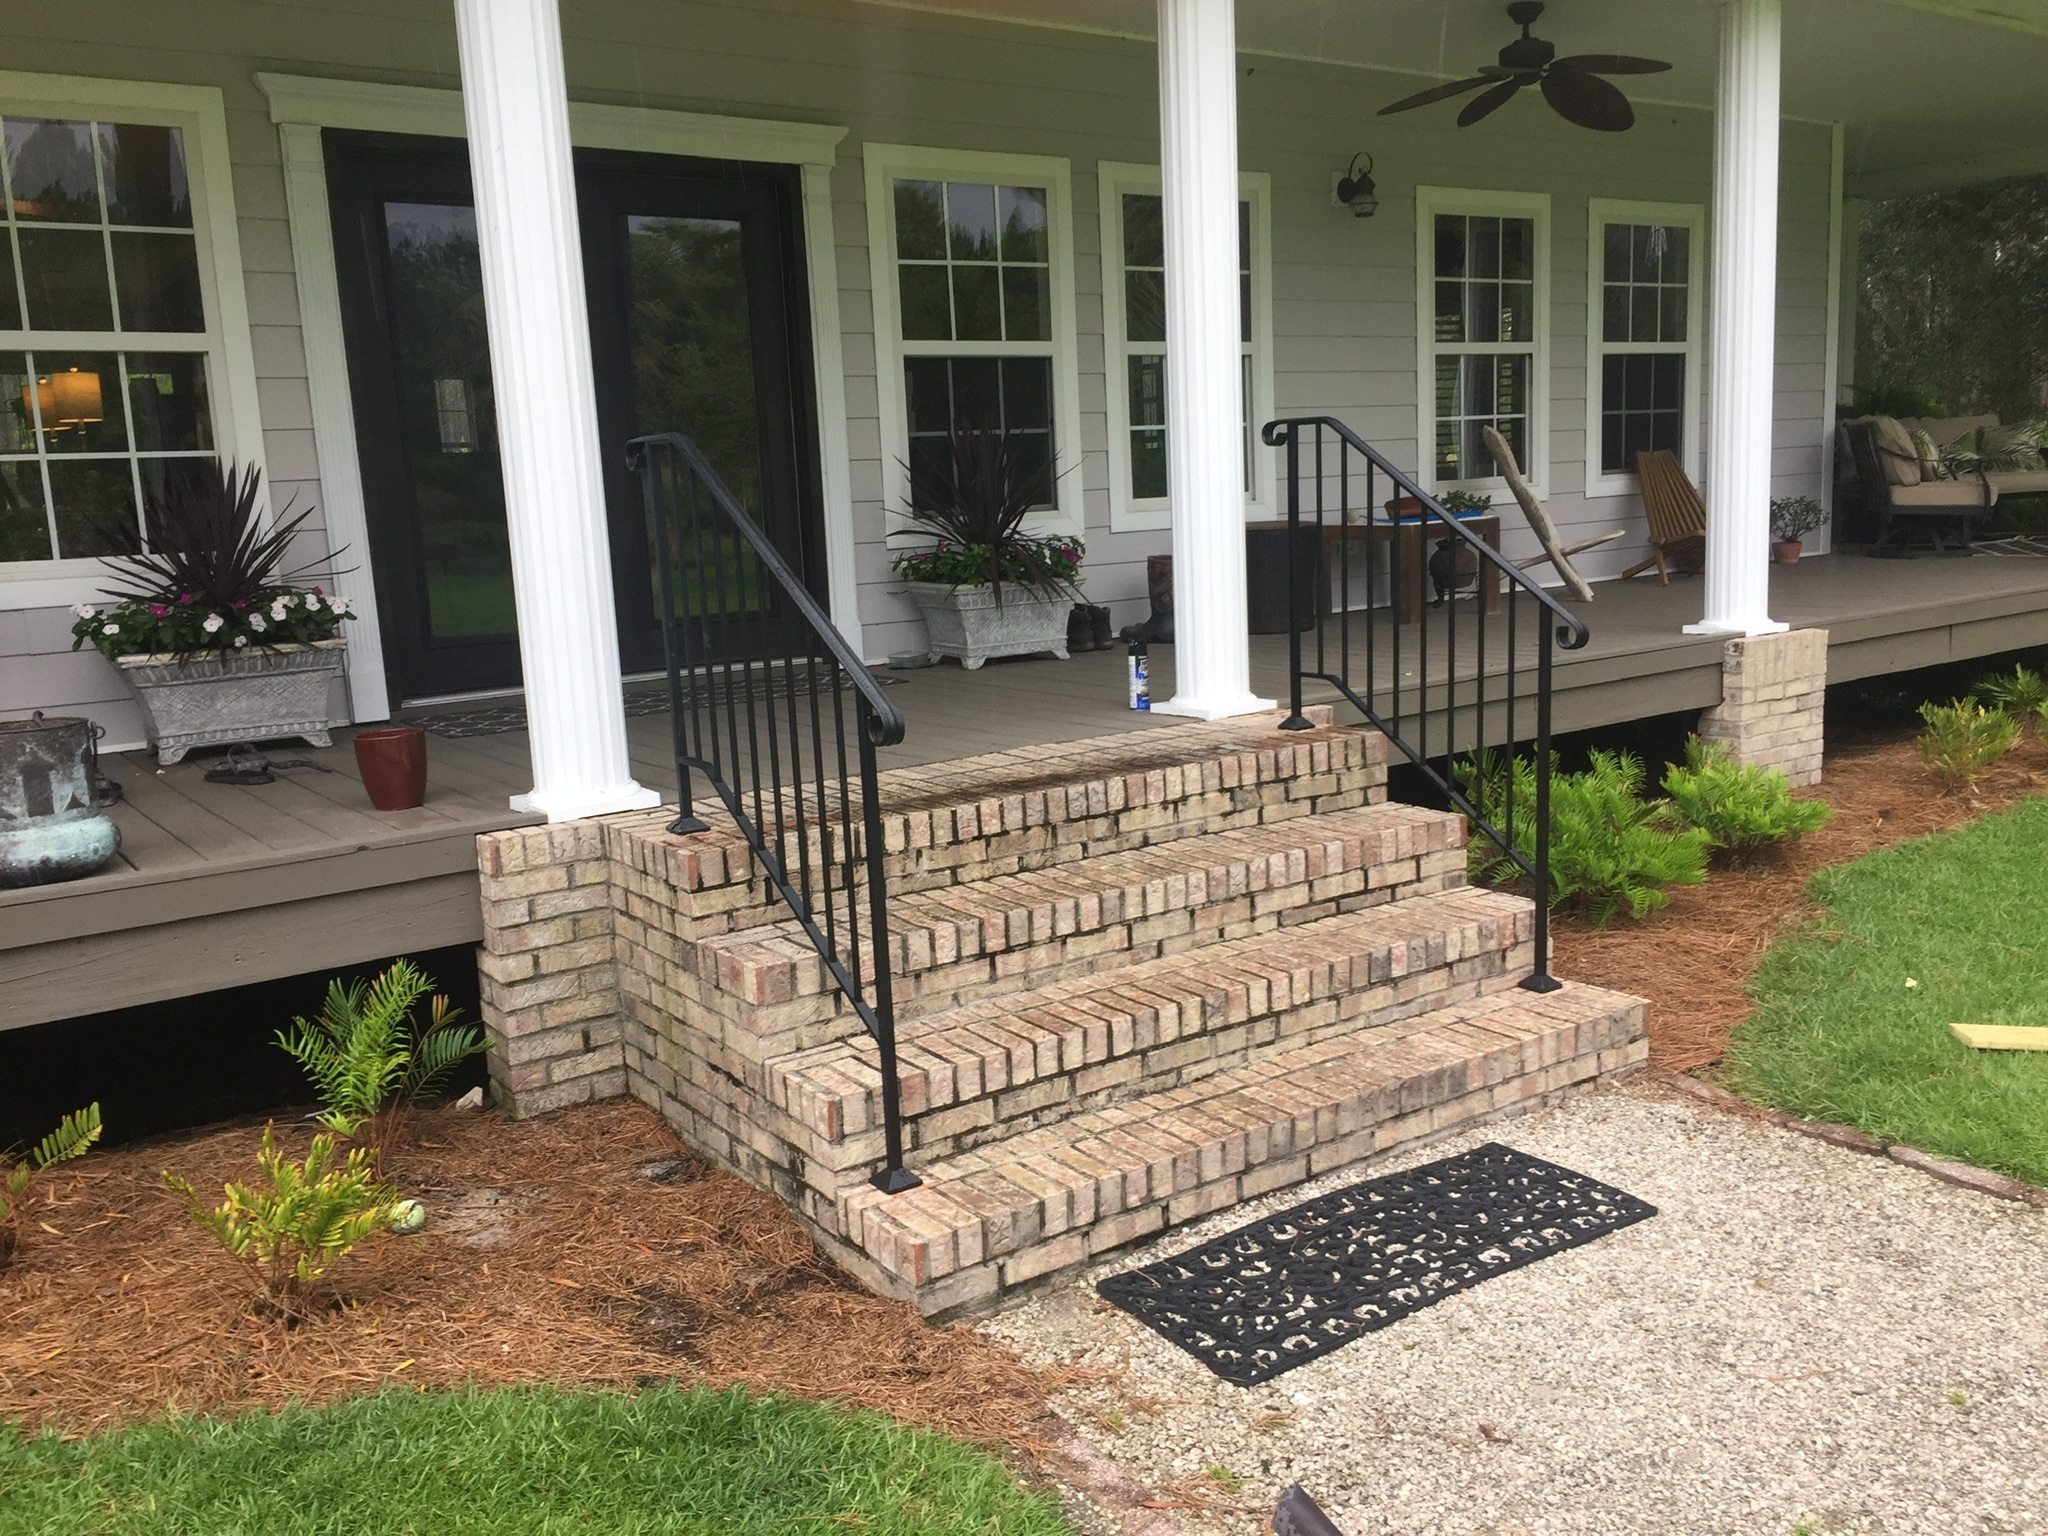 Shop Diy Wrought Iron Handrail Handrails For Indoor Outdoor Steps | Disabled Handrails For Outside Steps | Elderly | Full Width | 2 Step | Outdoor | Industrial Pipe